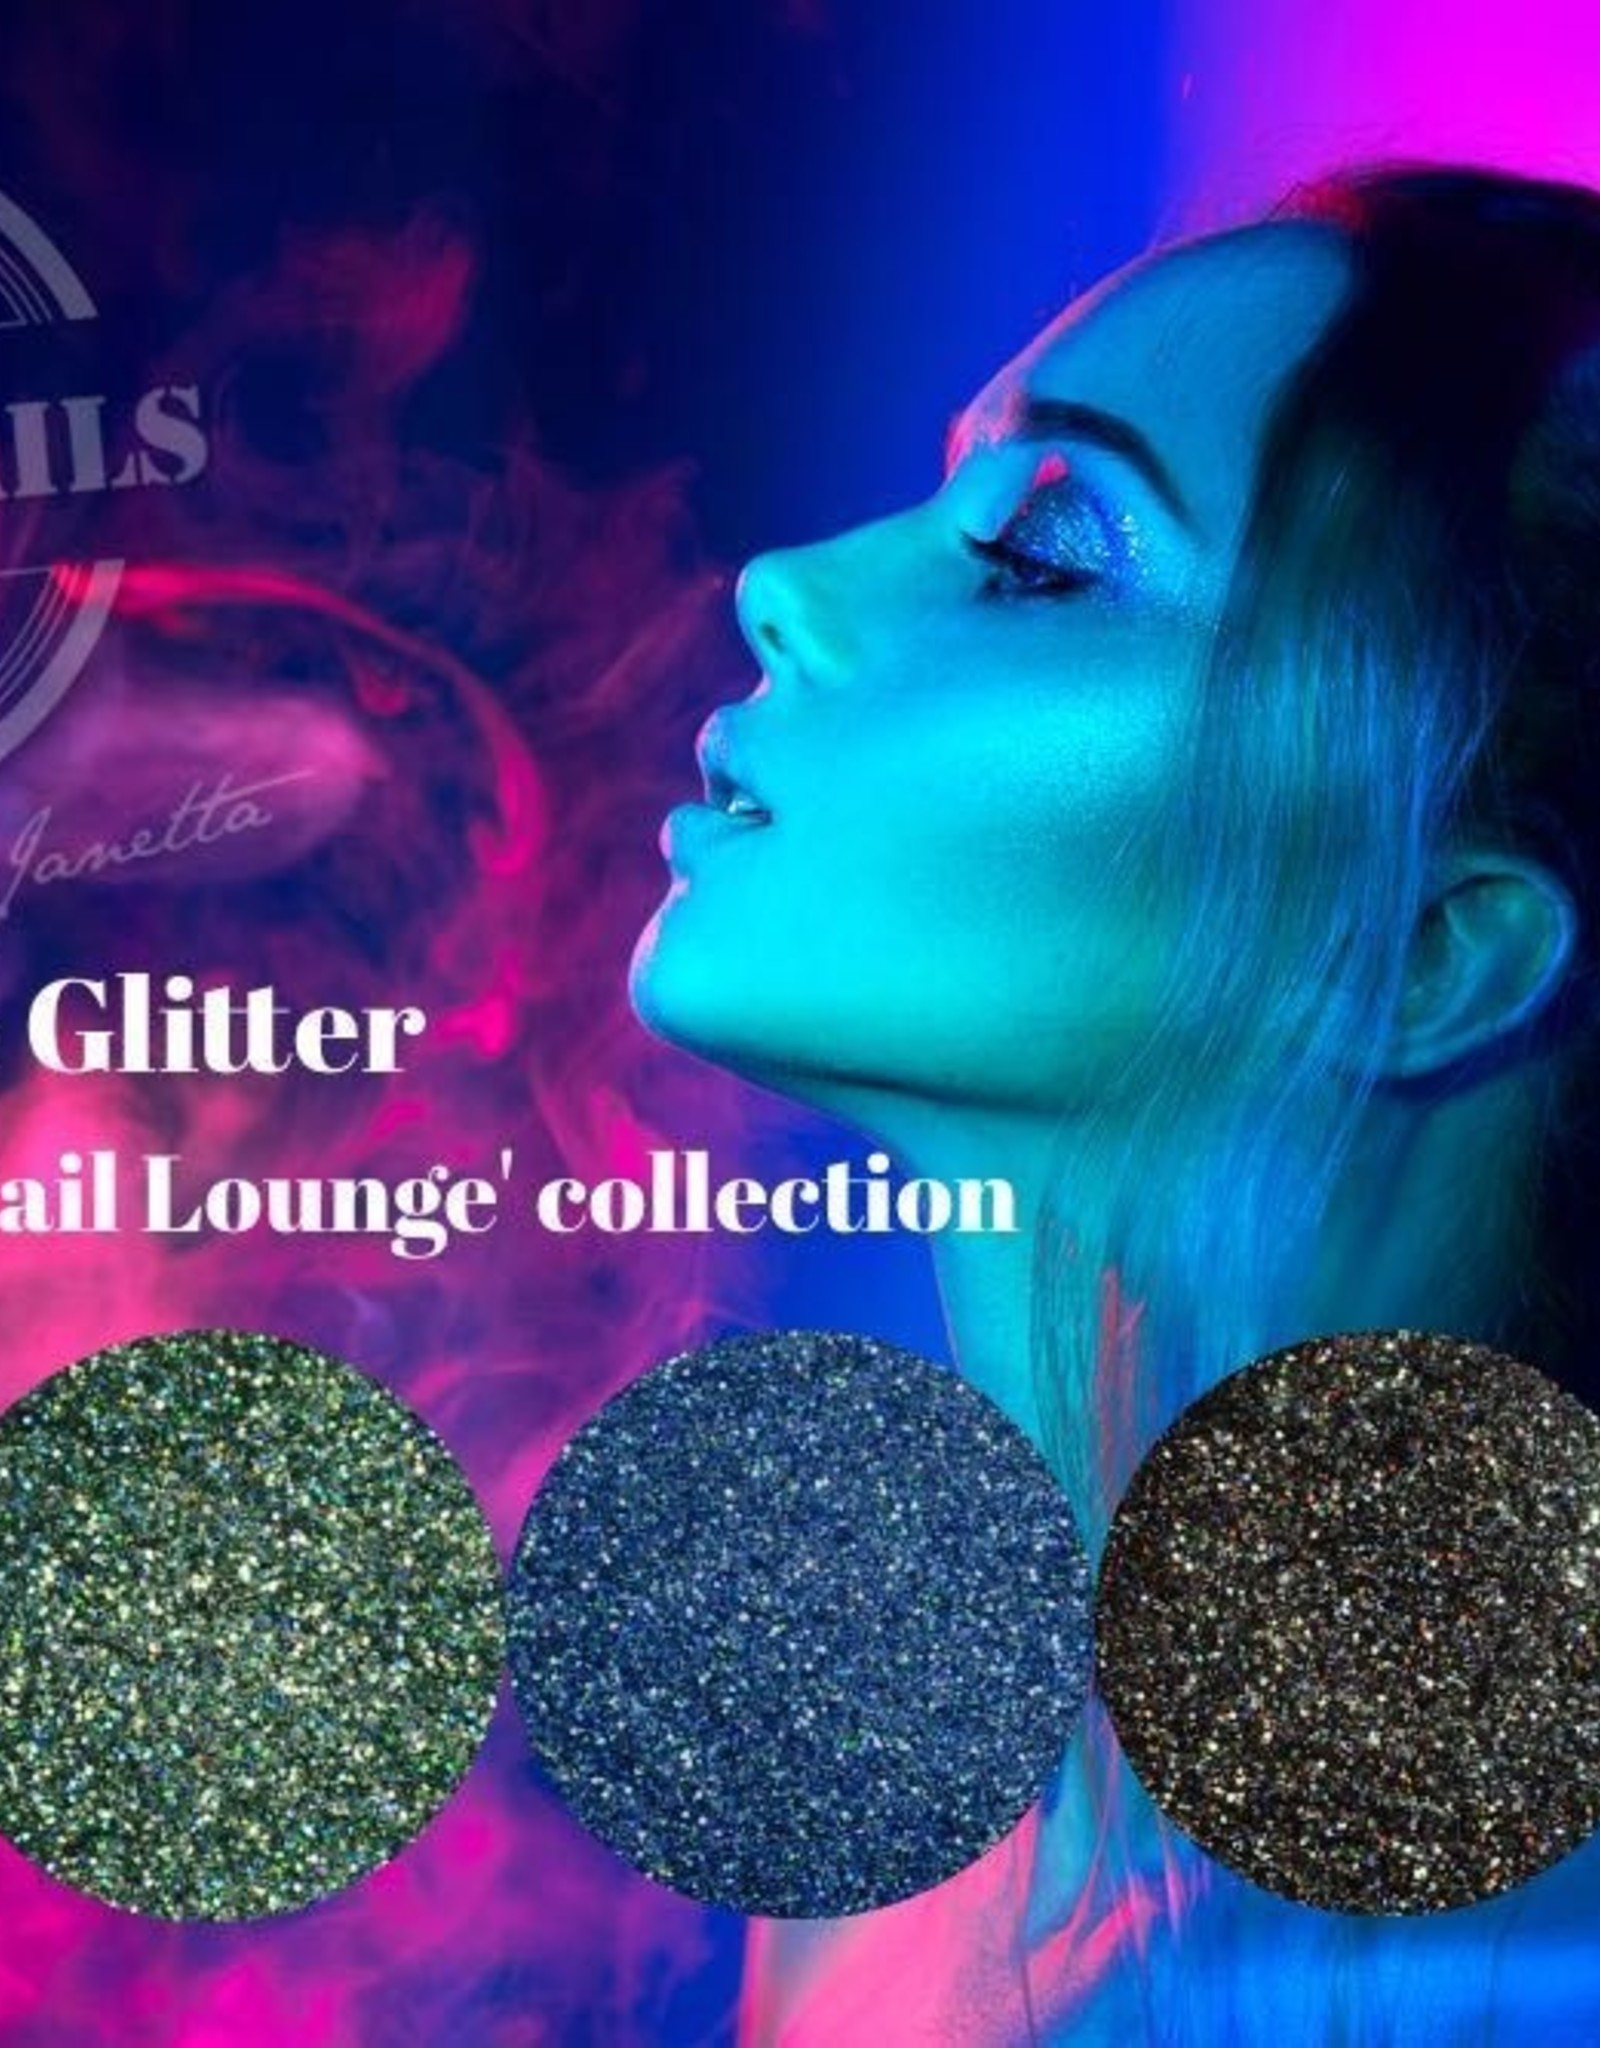 Urban Nails Kameo Cocktail Lounge Collection